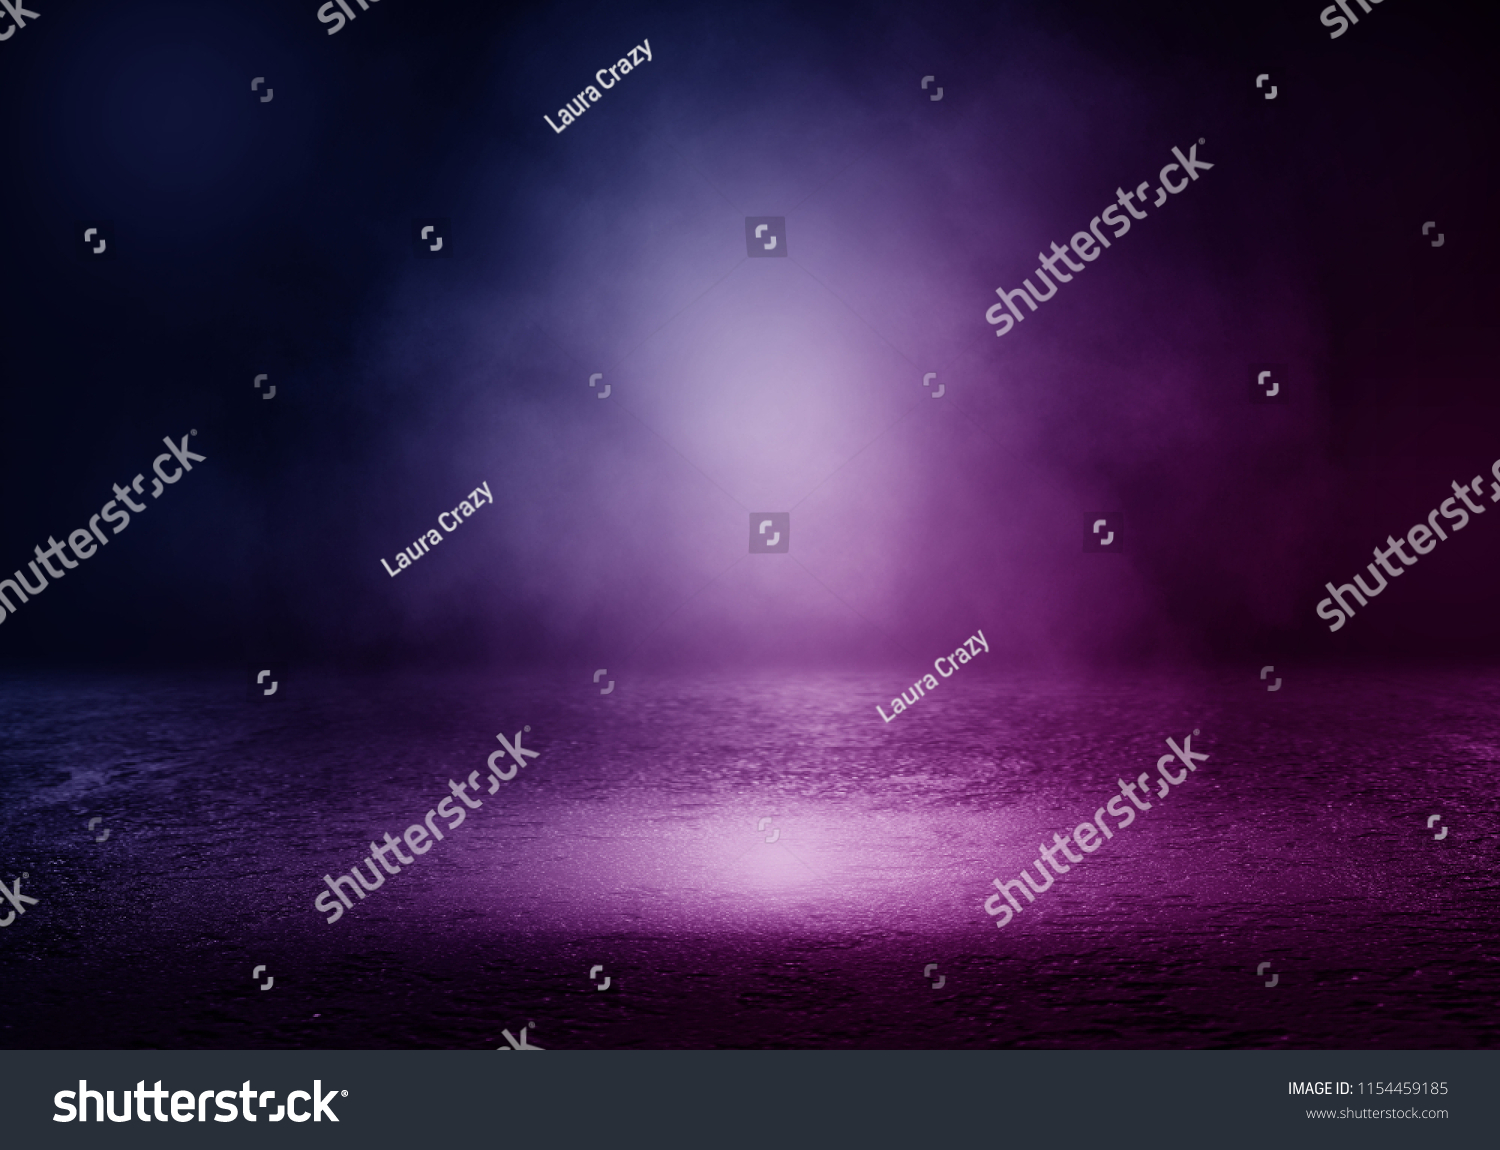 Background of empty room with spotlights and lights, abstract purple background with neon glow #1154459185